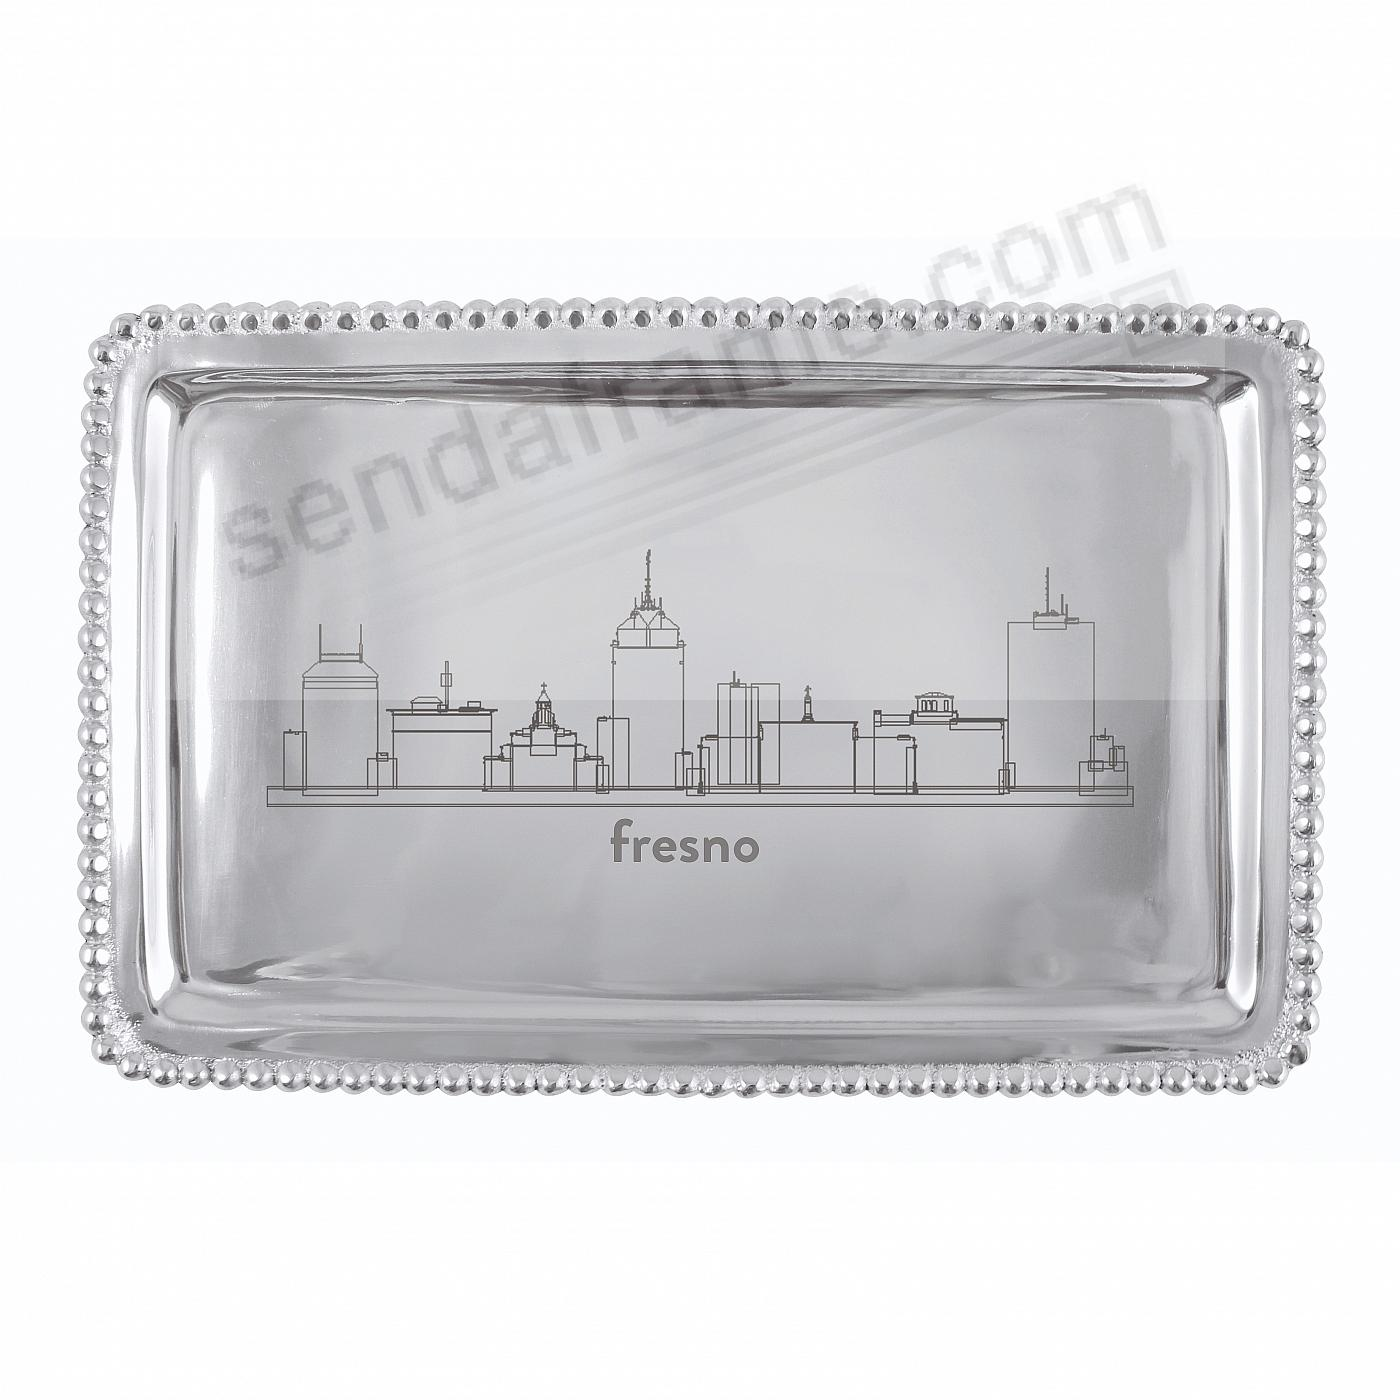 The FRESNO-CALIFORNIA CITYSCAPE BEADED BUFFET TRAY crafted by Mariposa®